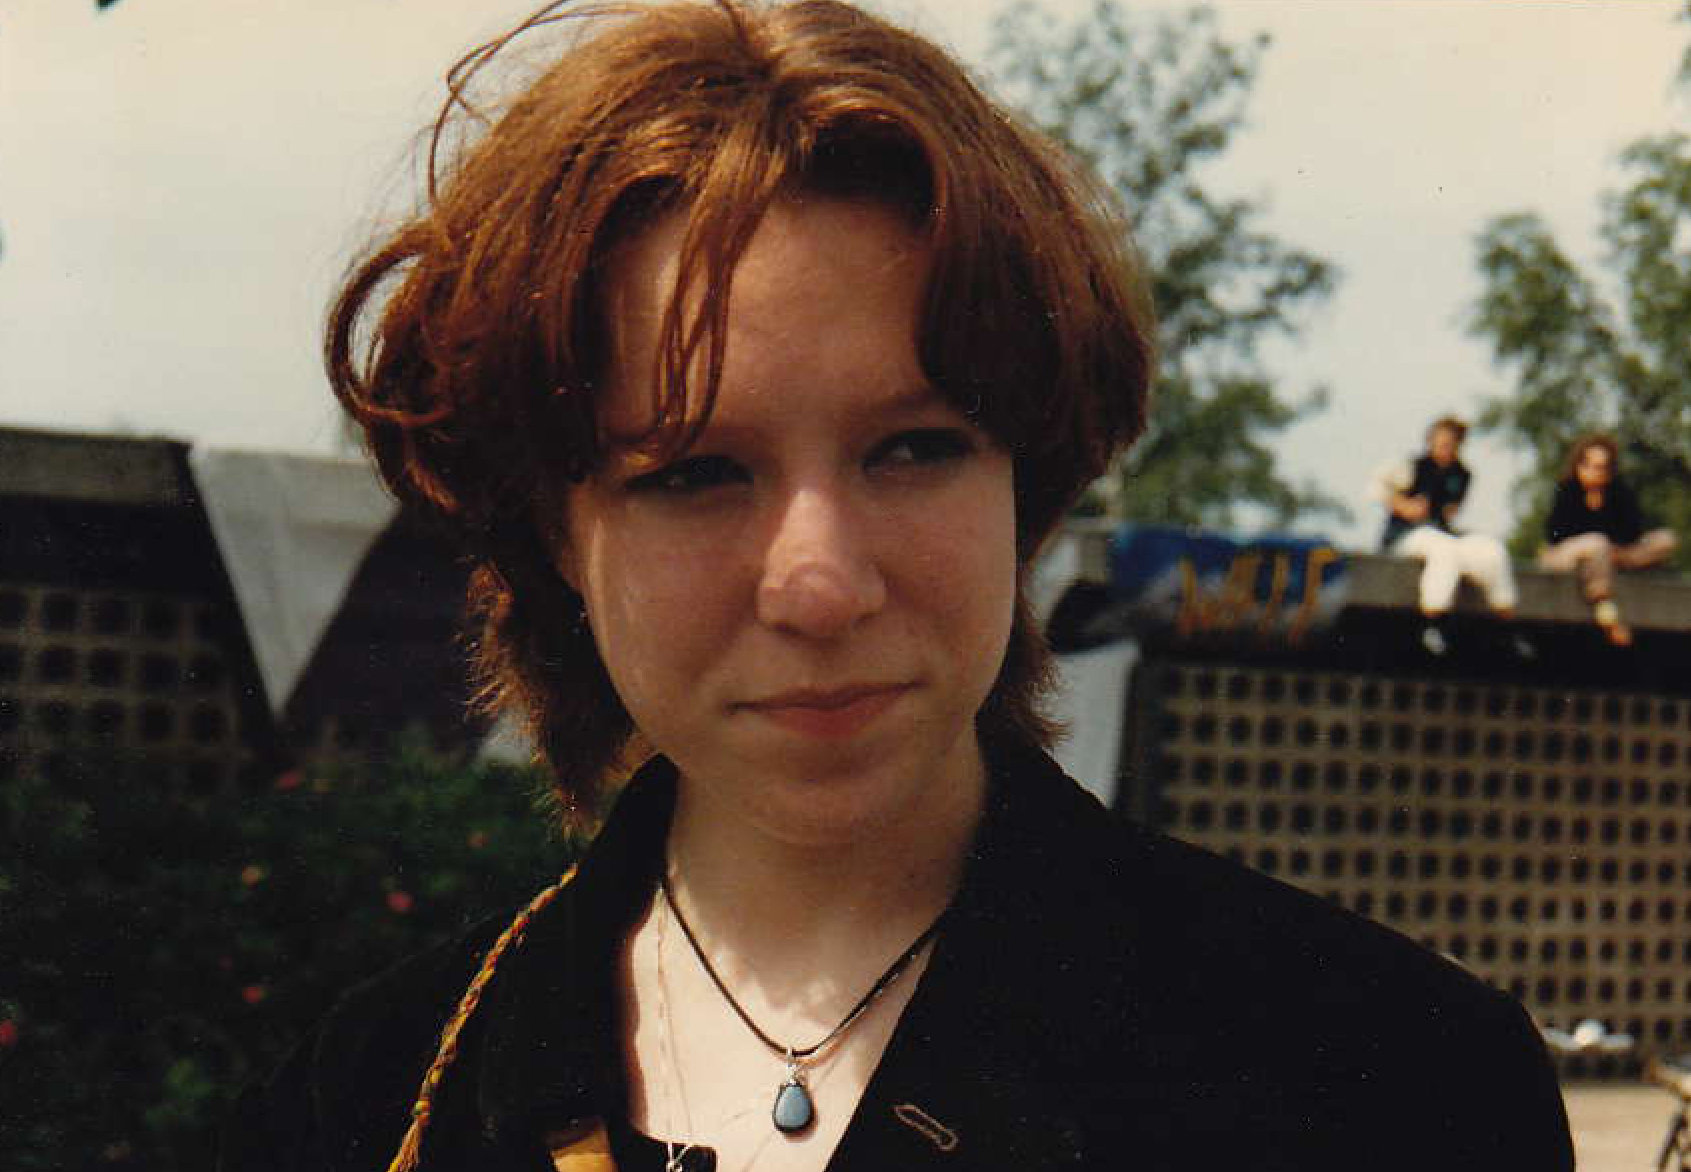 Me at my high school, age 18.